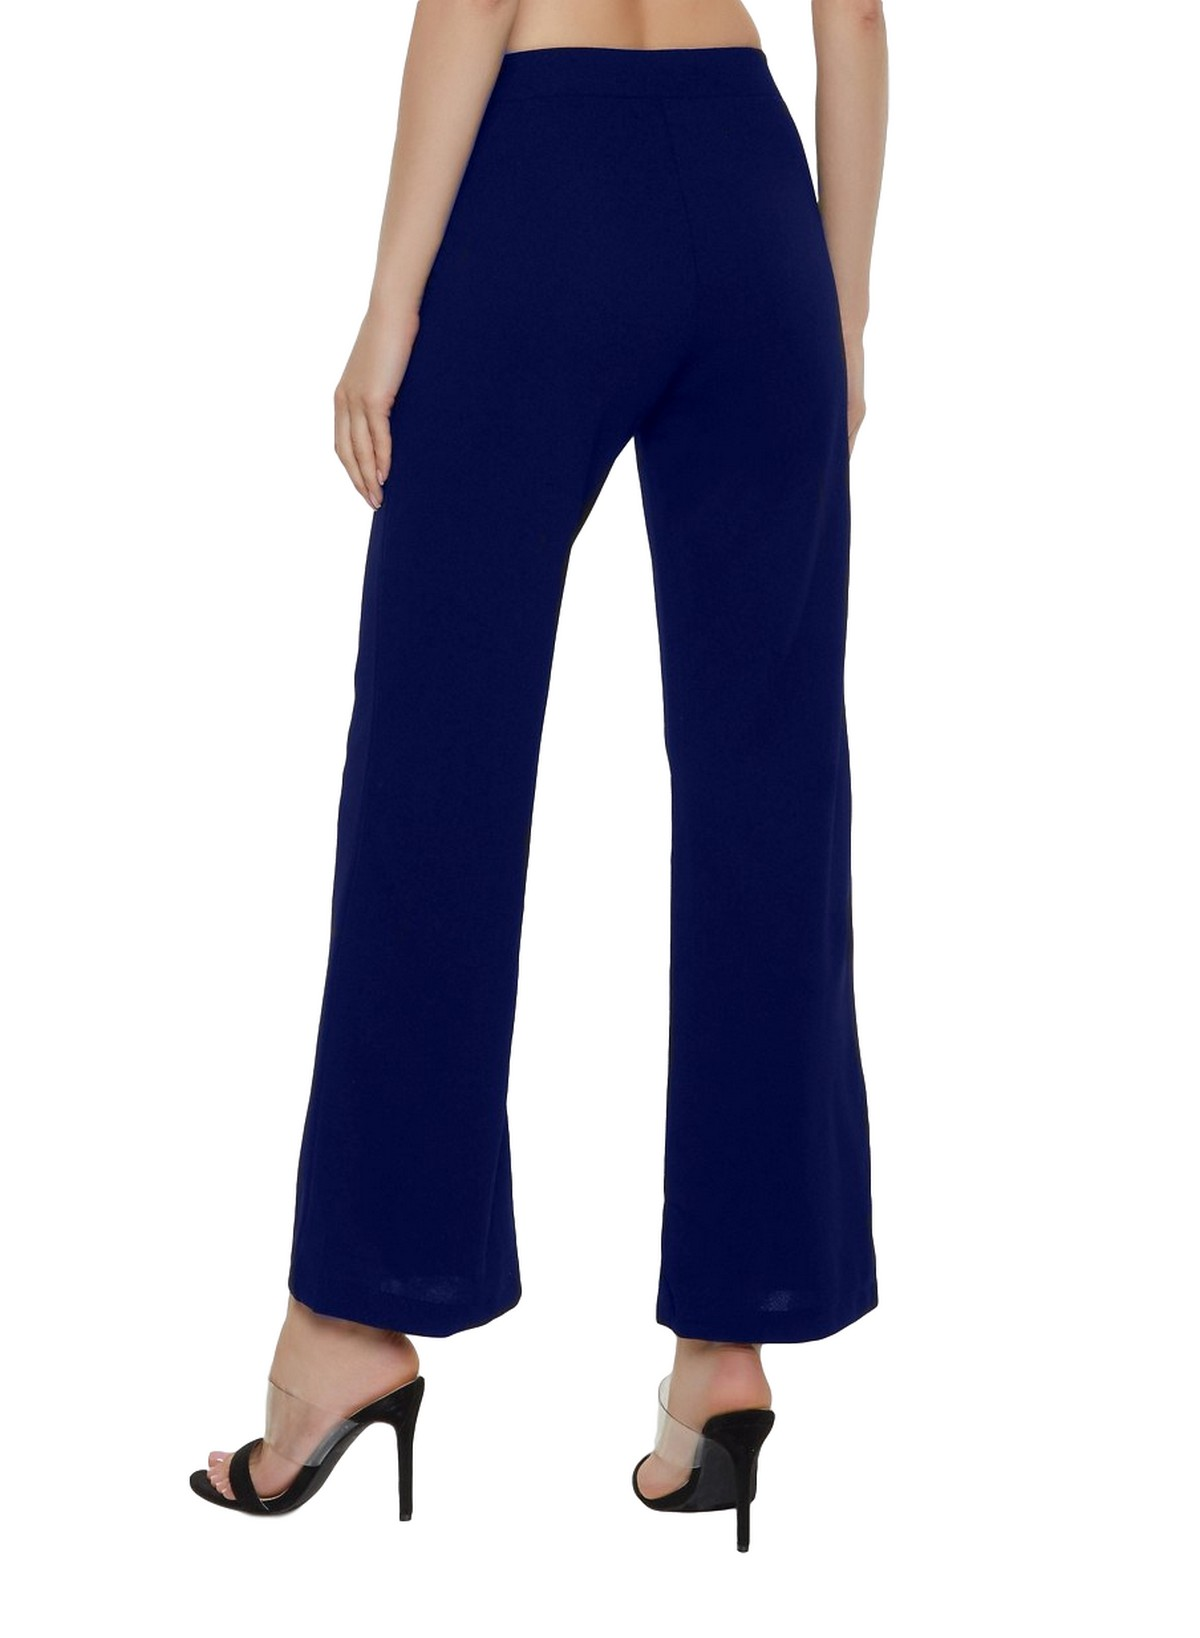 Slim Fit Culottes Trousers in Royal Blue